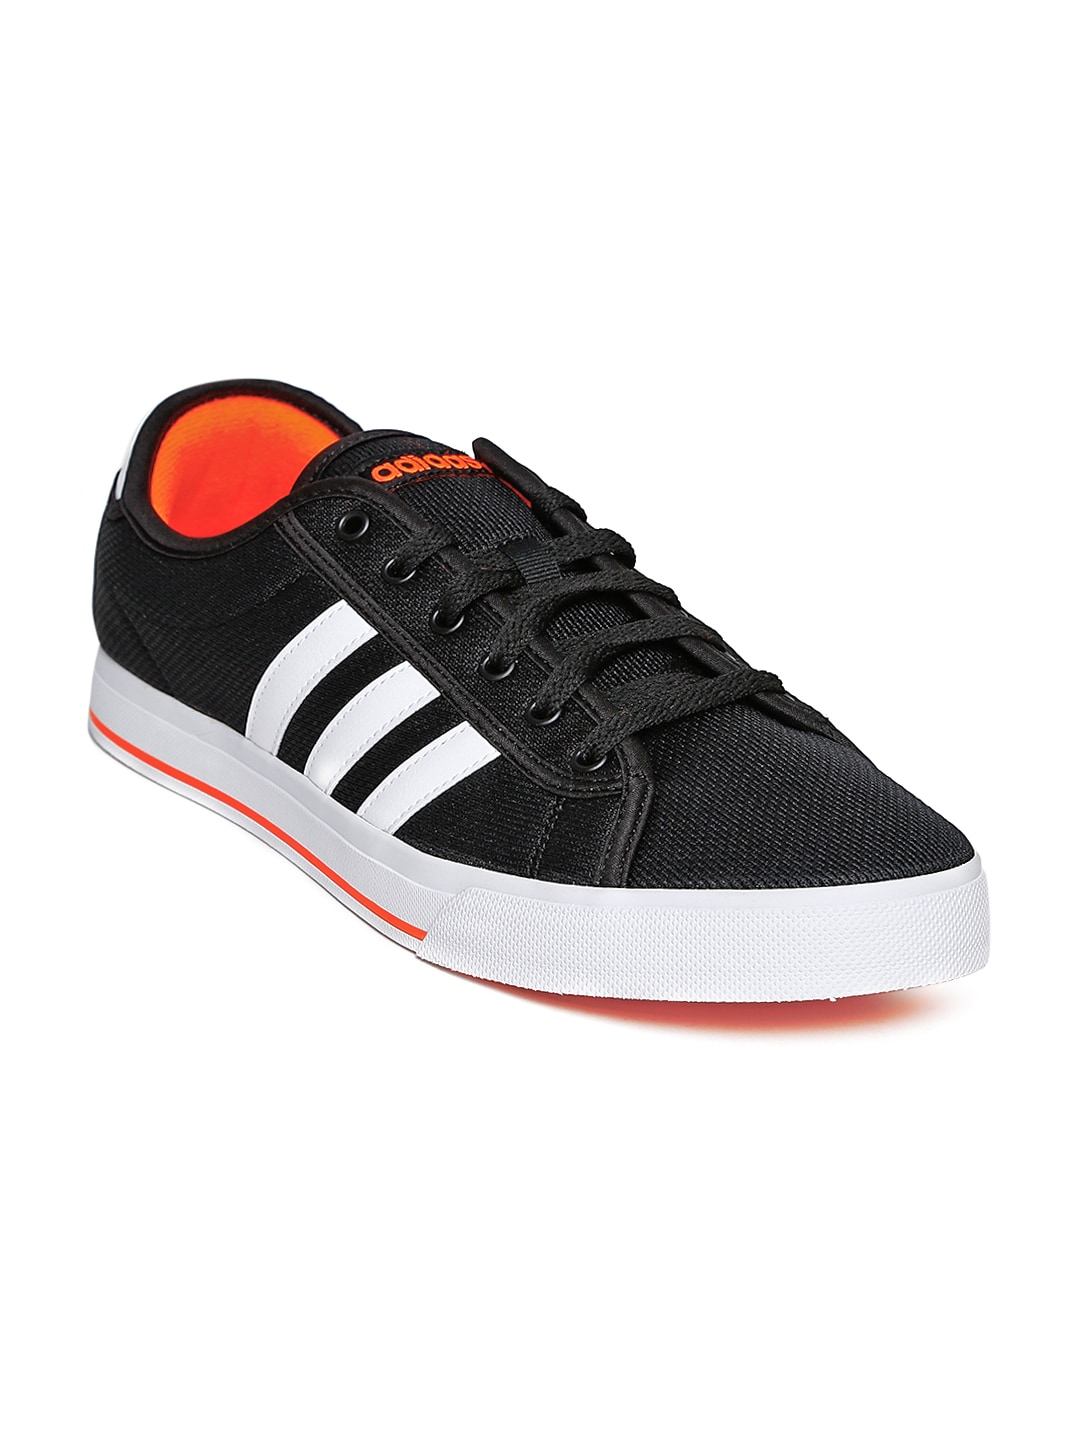 Adidas neo f98350 Men Black Daily Bind Sneakers Best